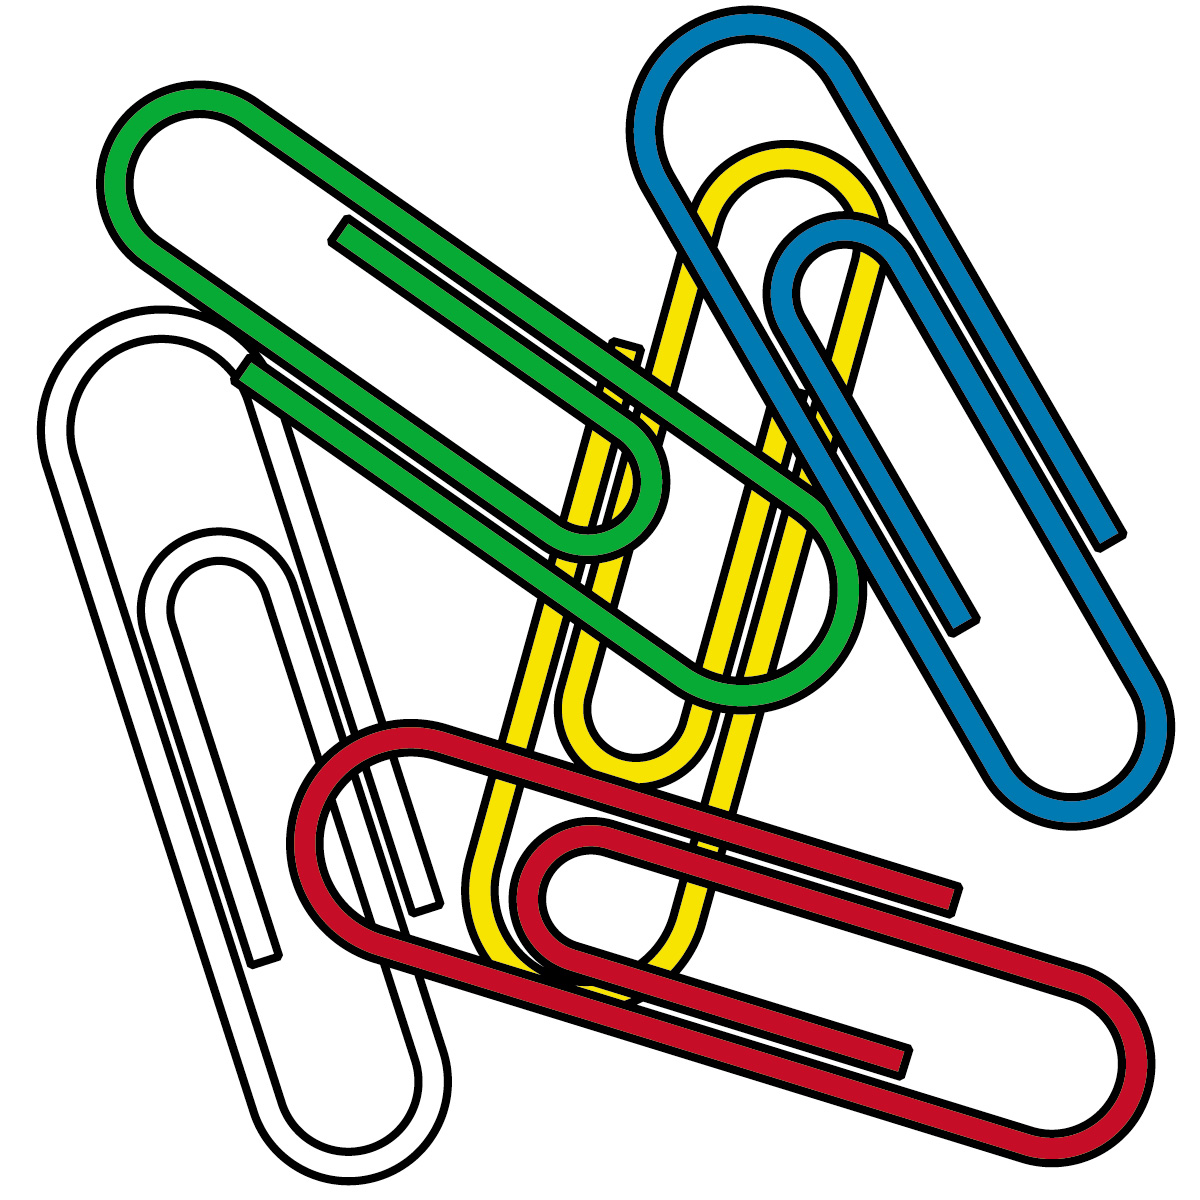 uses for paper clips